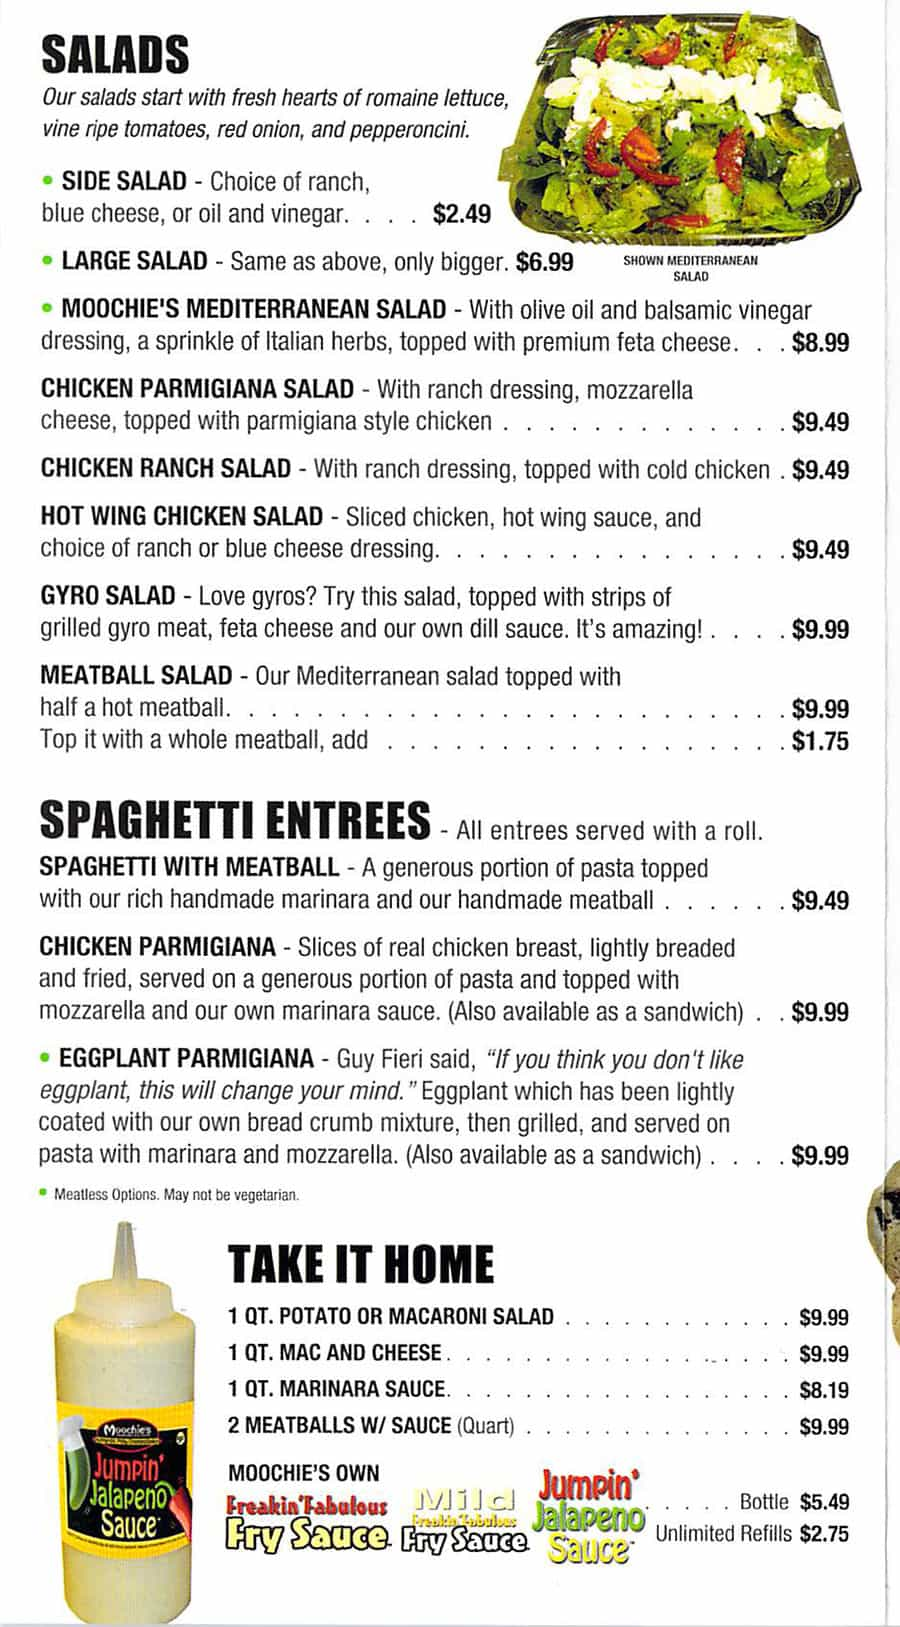 Moochie's Meatballs And More menu - salads, spaghetti